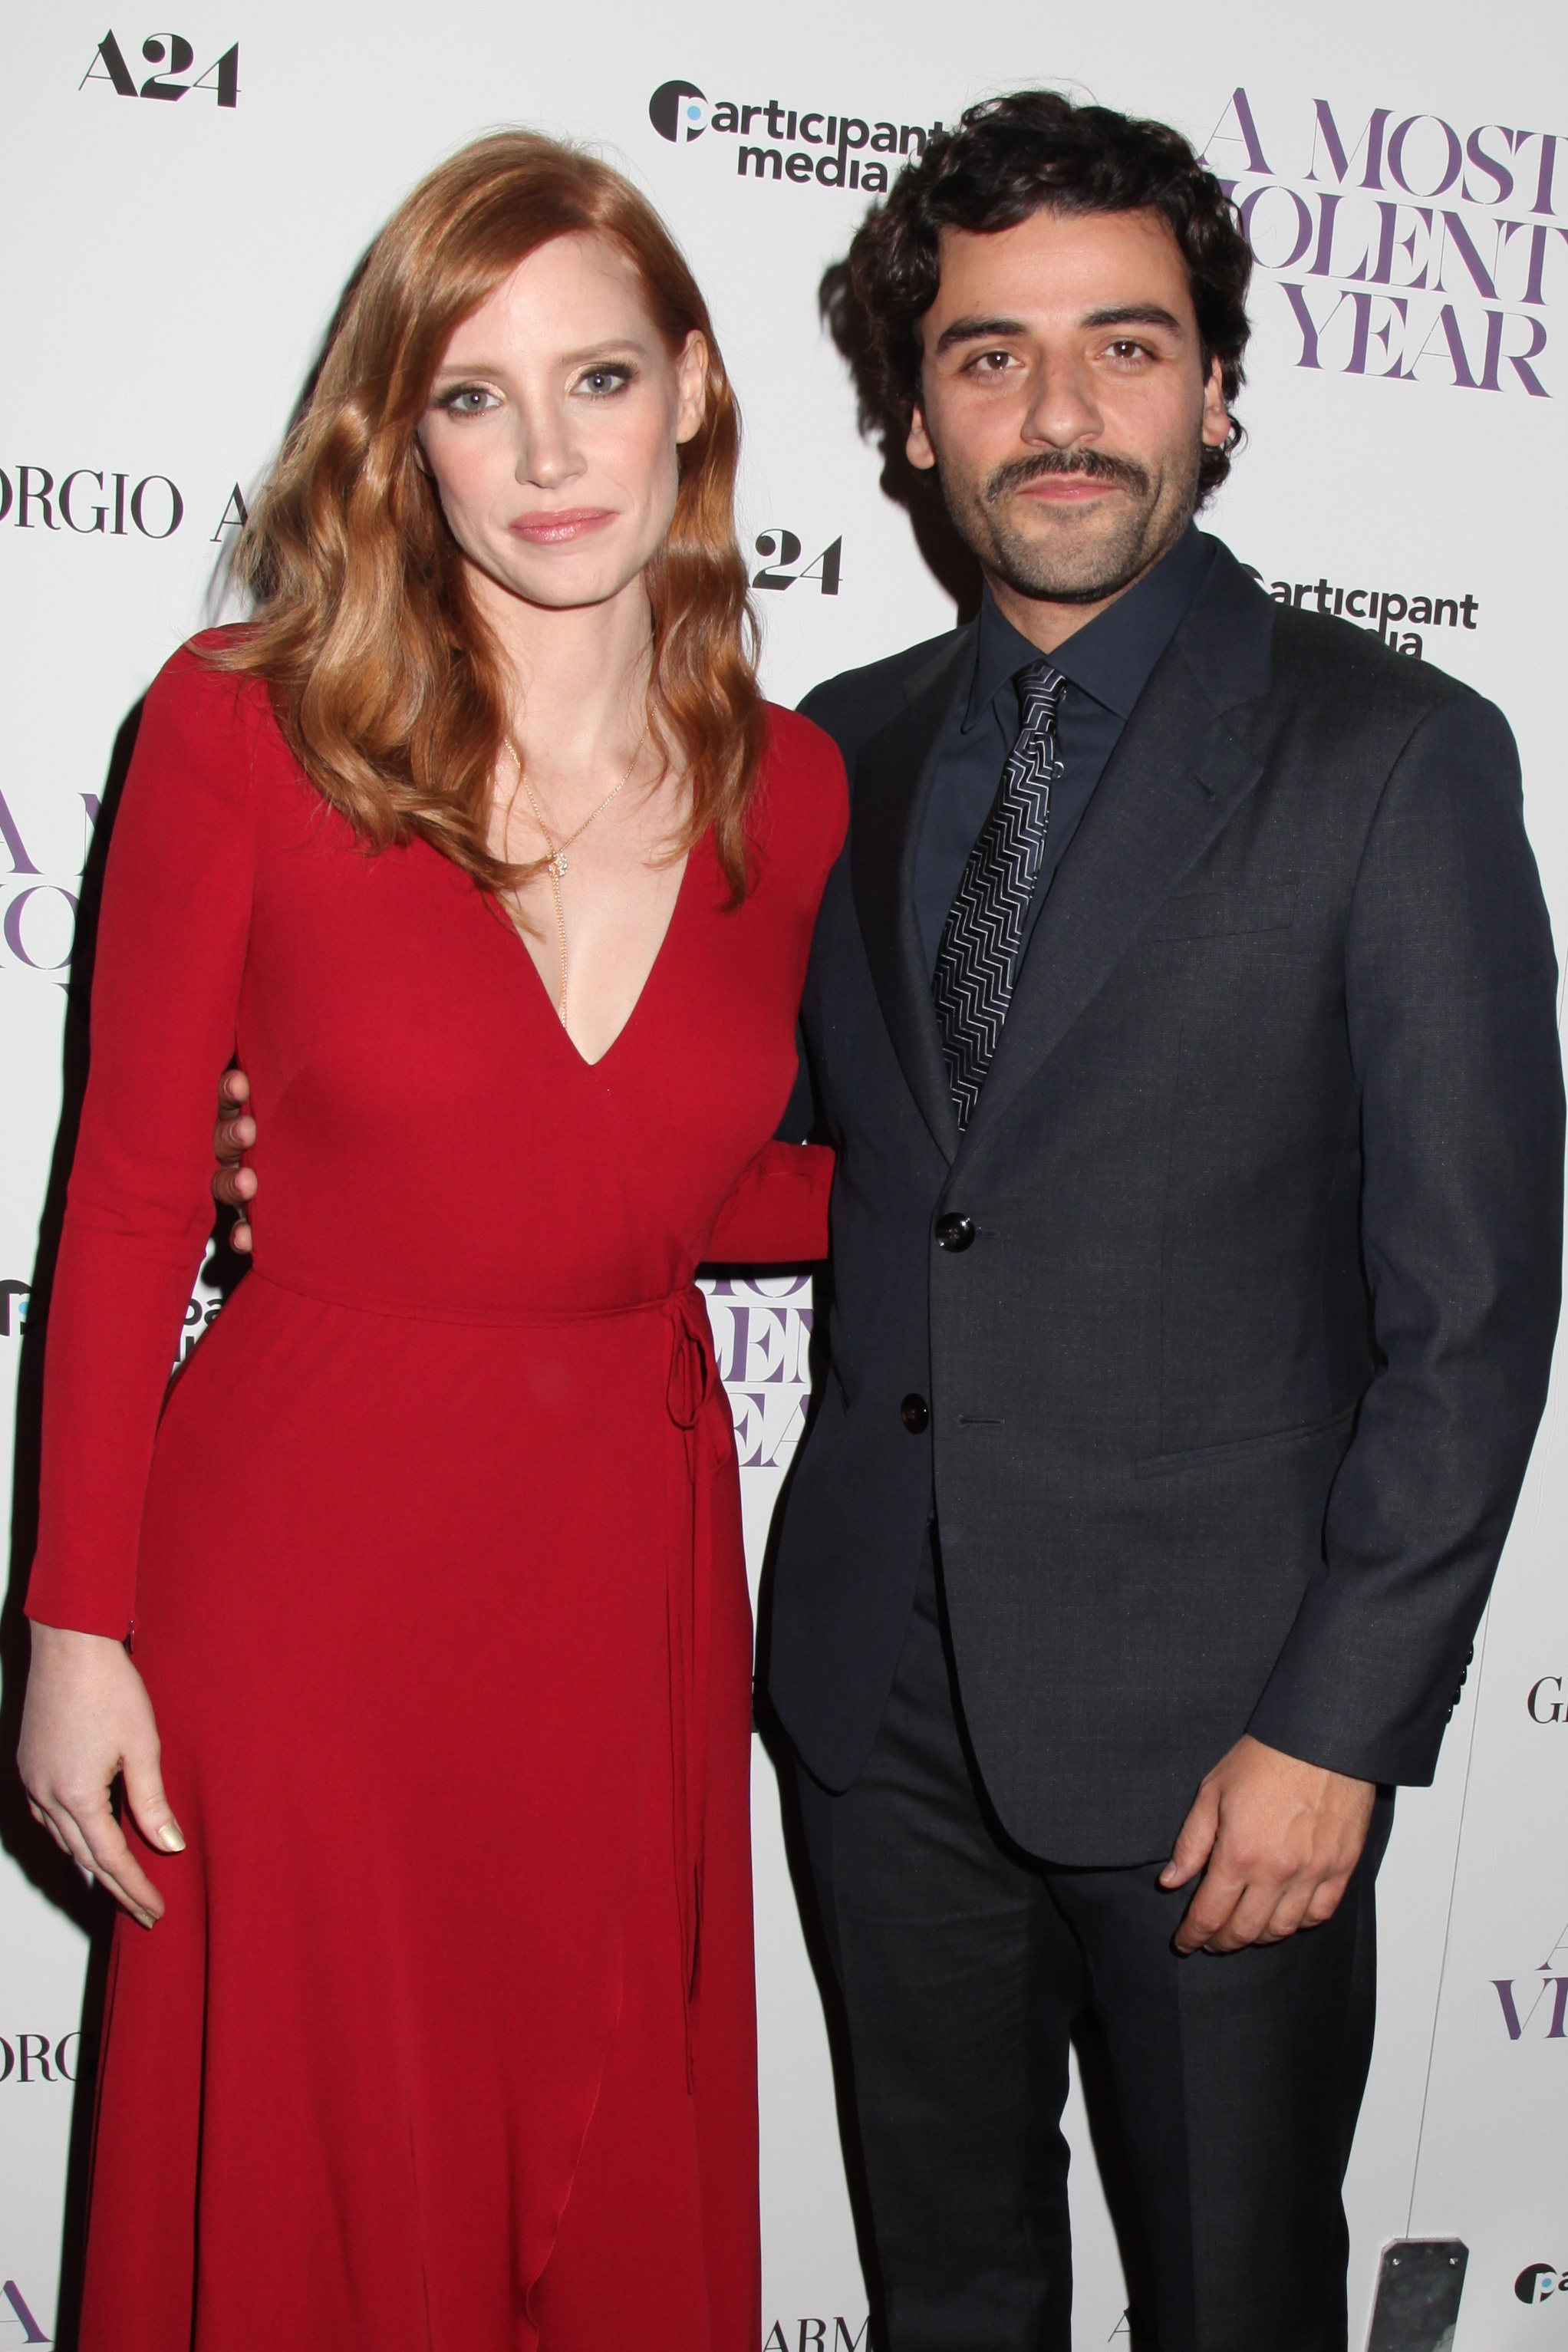 """Jessica Chastain and Oscar Isaac attend the premiere of """"A Most Violent Year"""" in New York City on Dec. 7, 2014."""